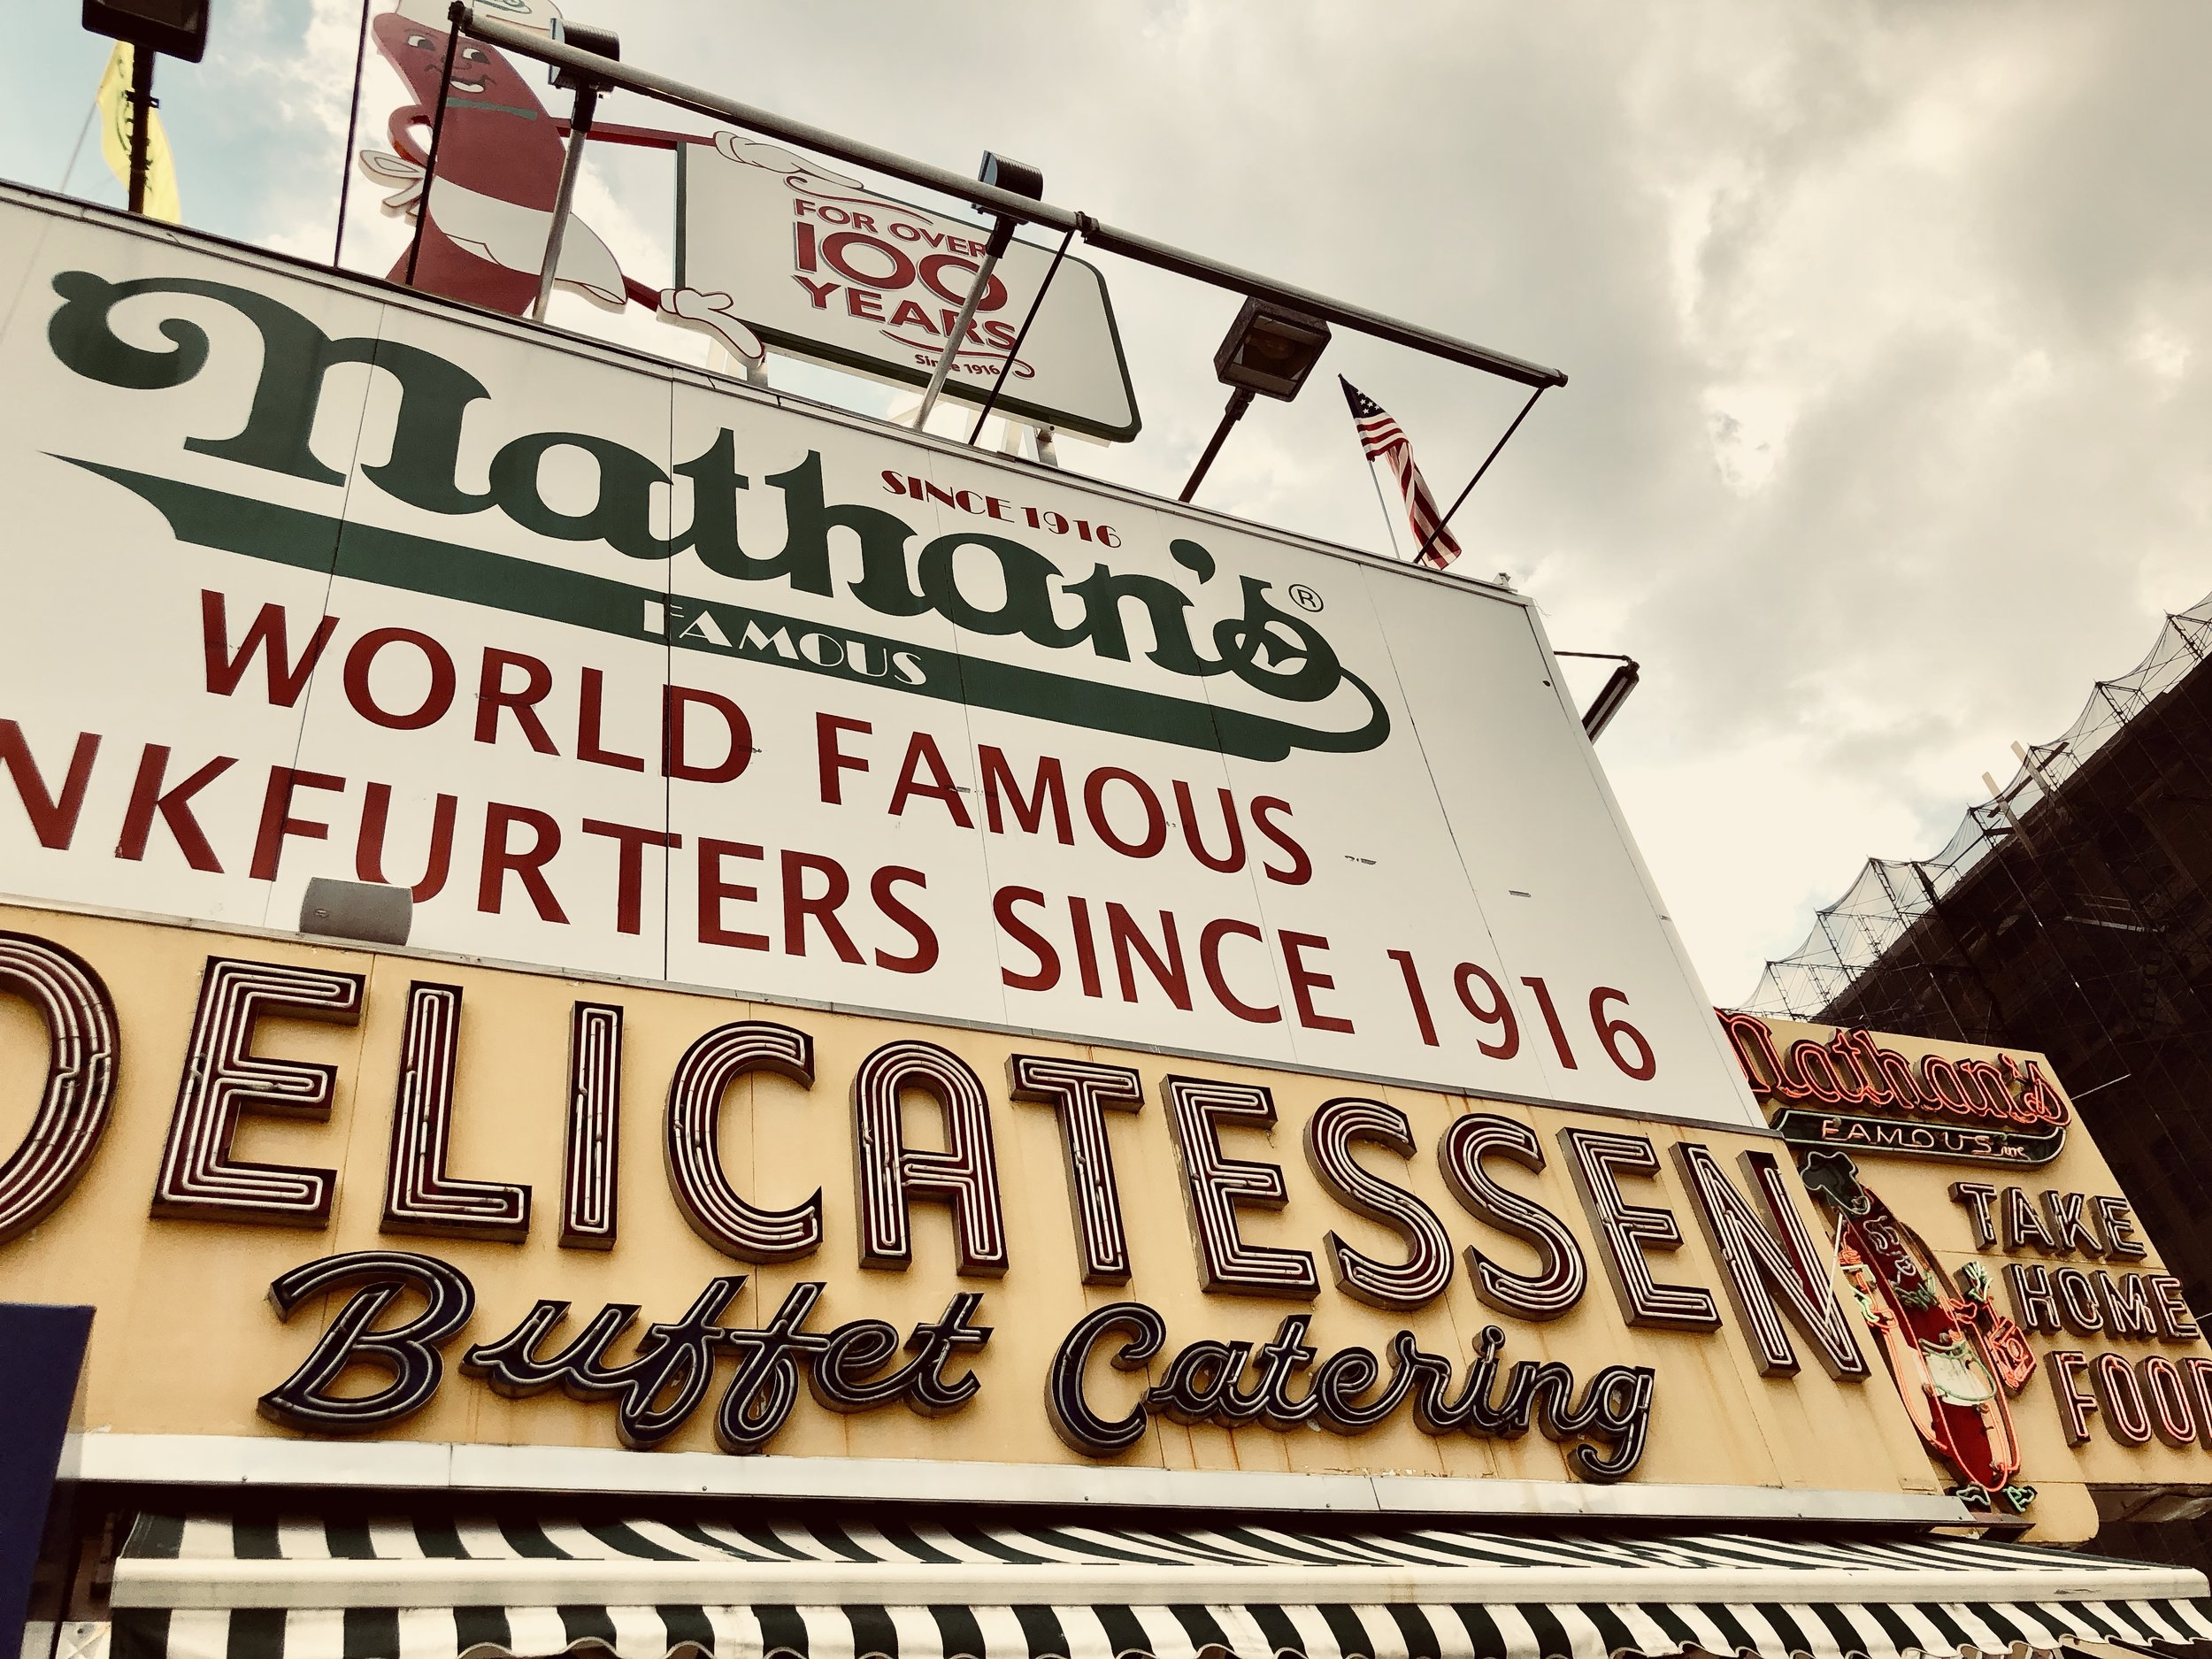 Image taken by Samantha McHenry, Nathan's Hot Dog Stand, 2018.